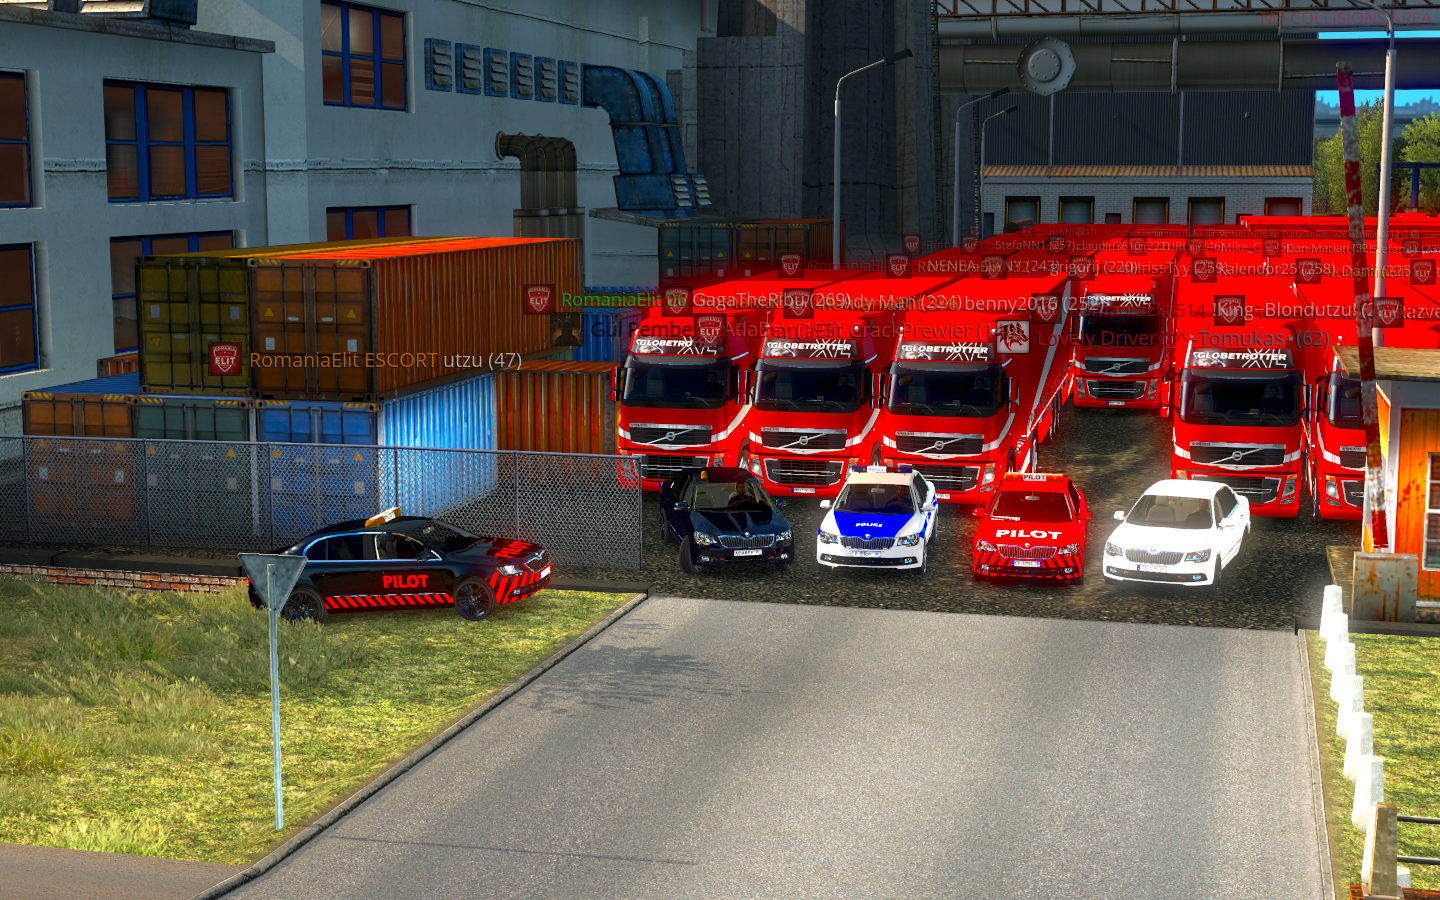 ets2_20190315_210150_00.png